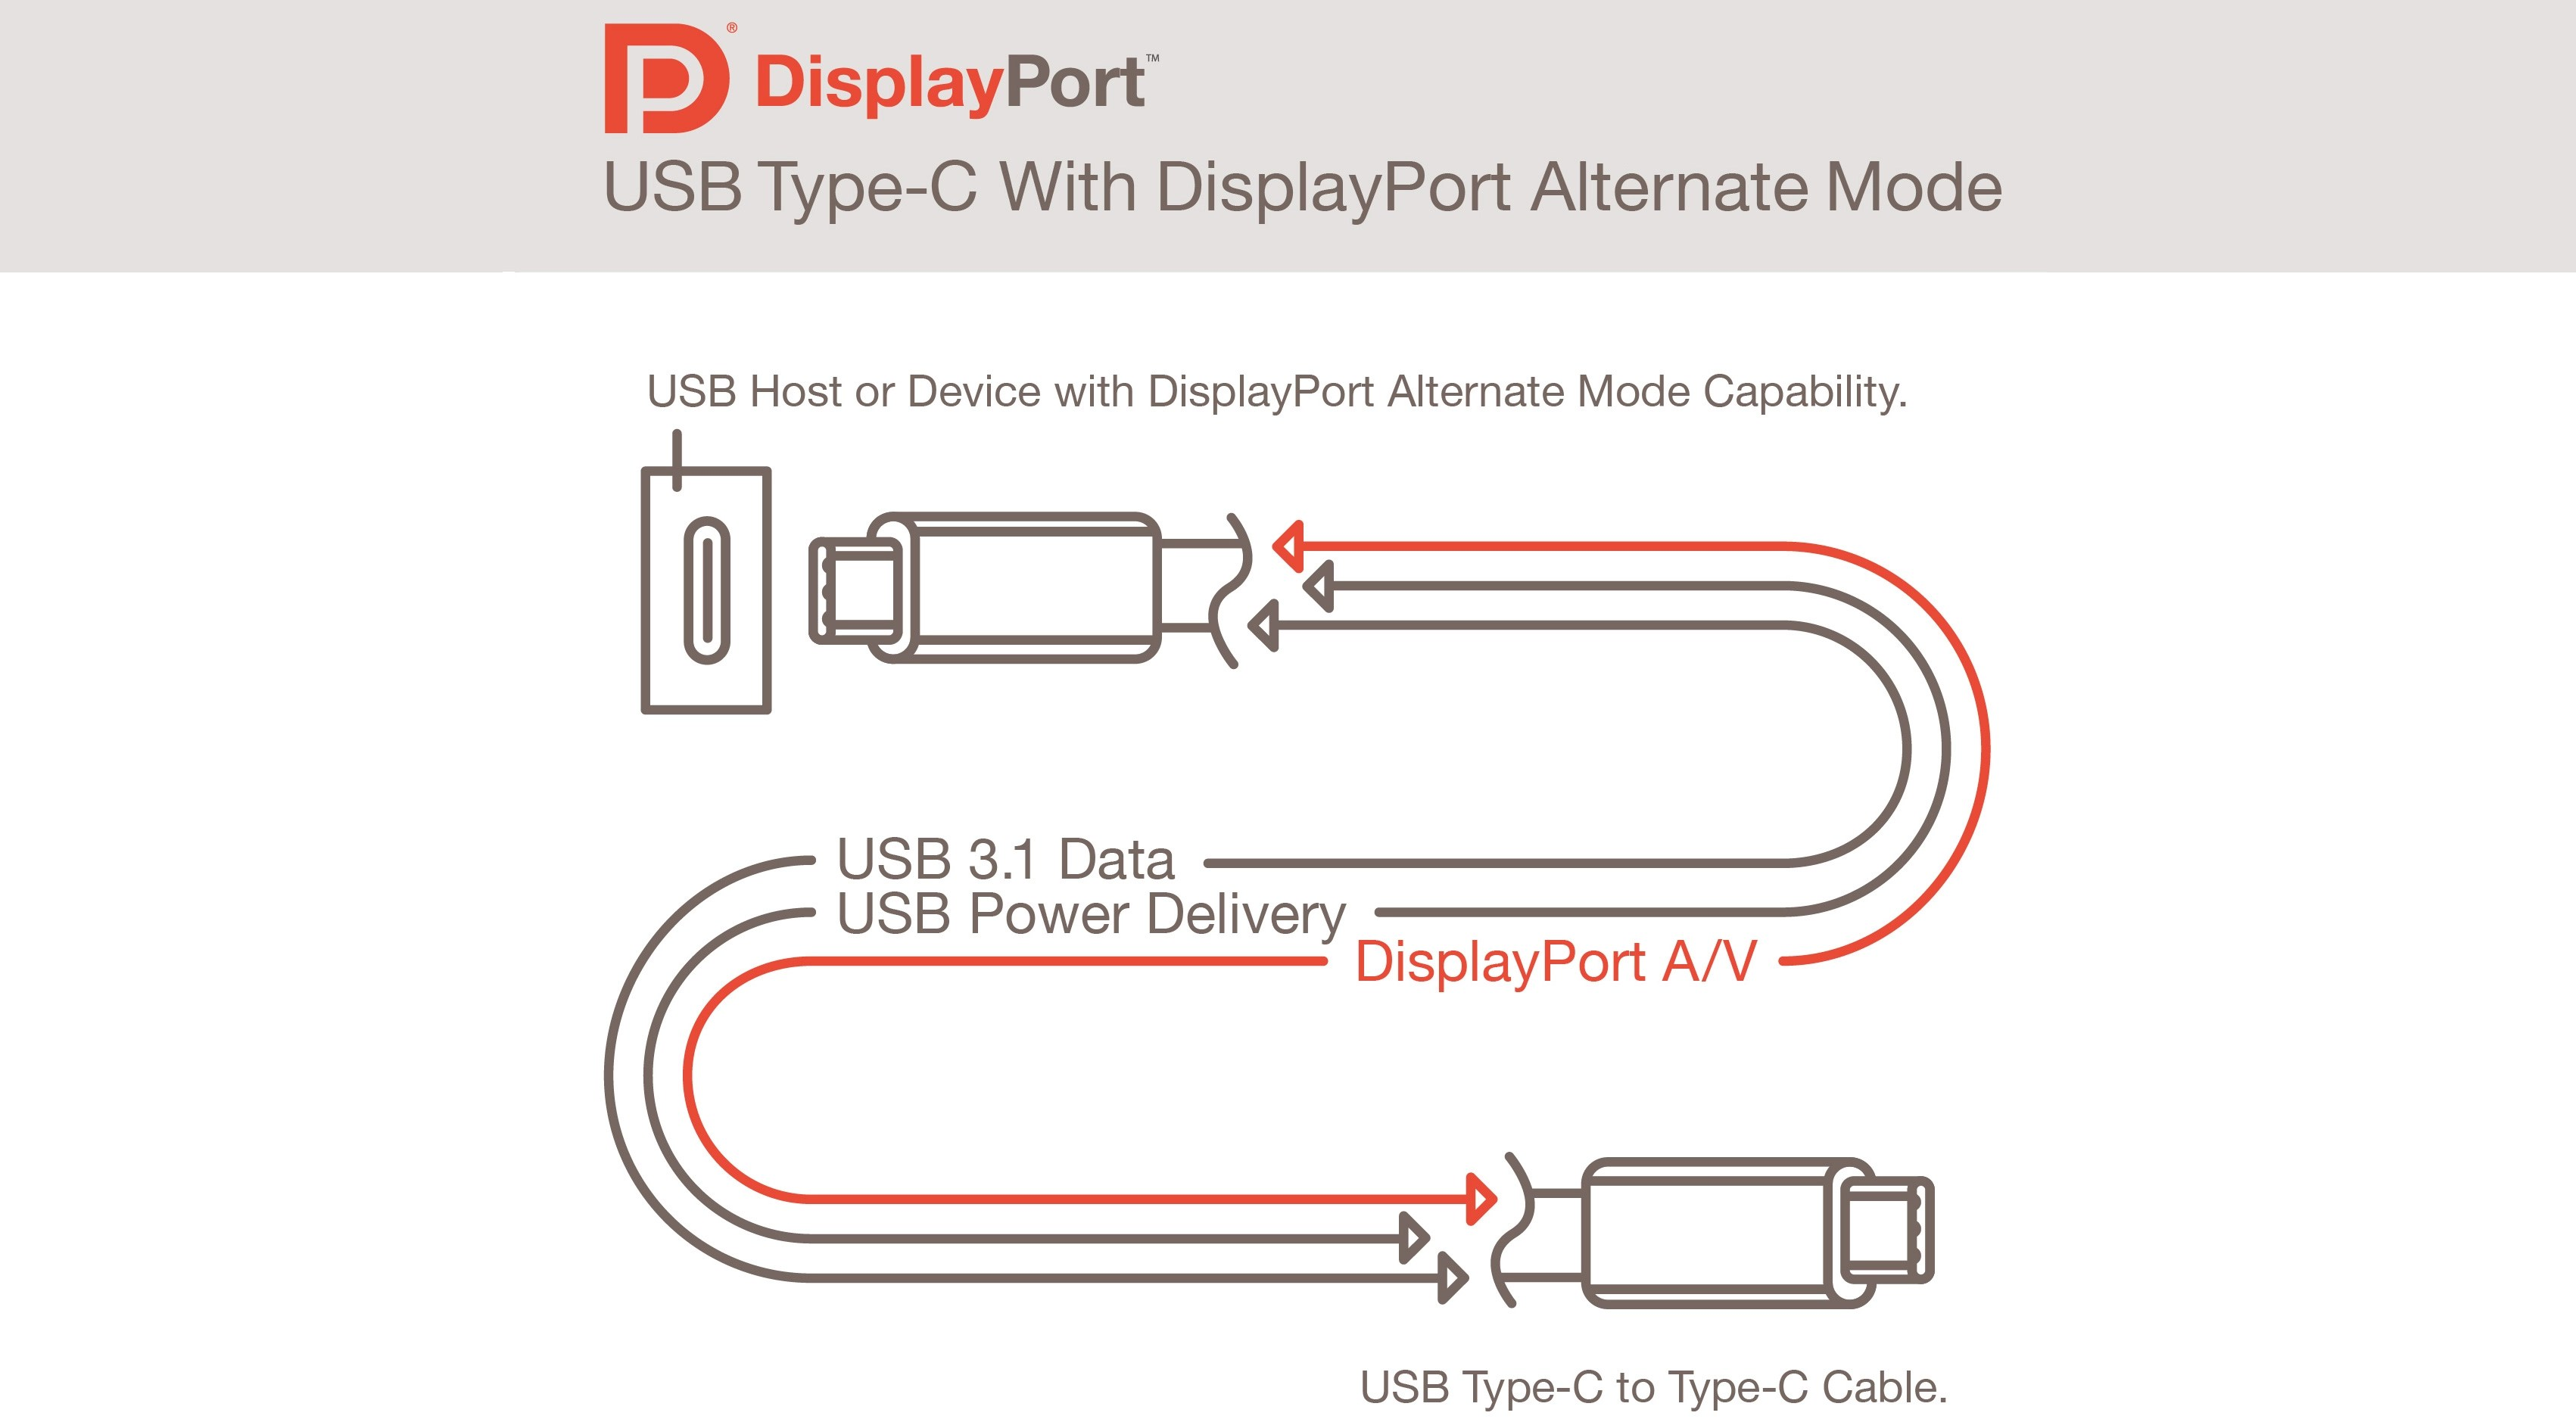 Usb Type C Connector Will Also Support Displayport